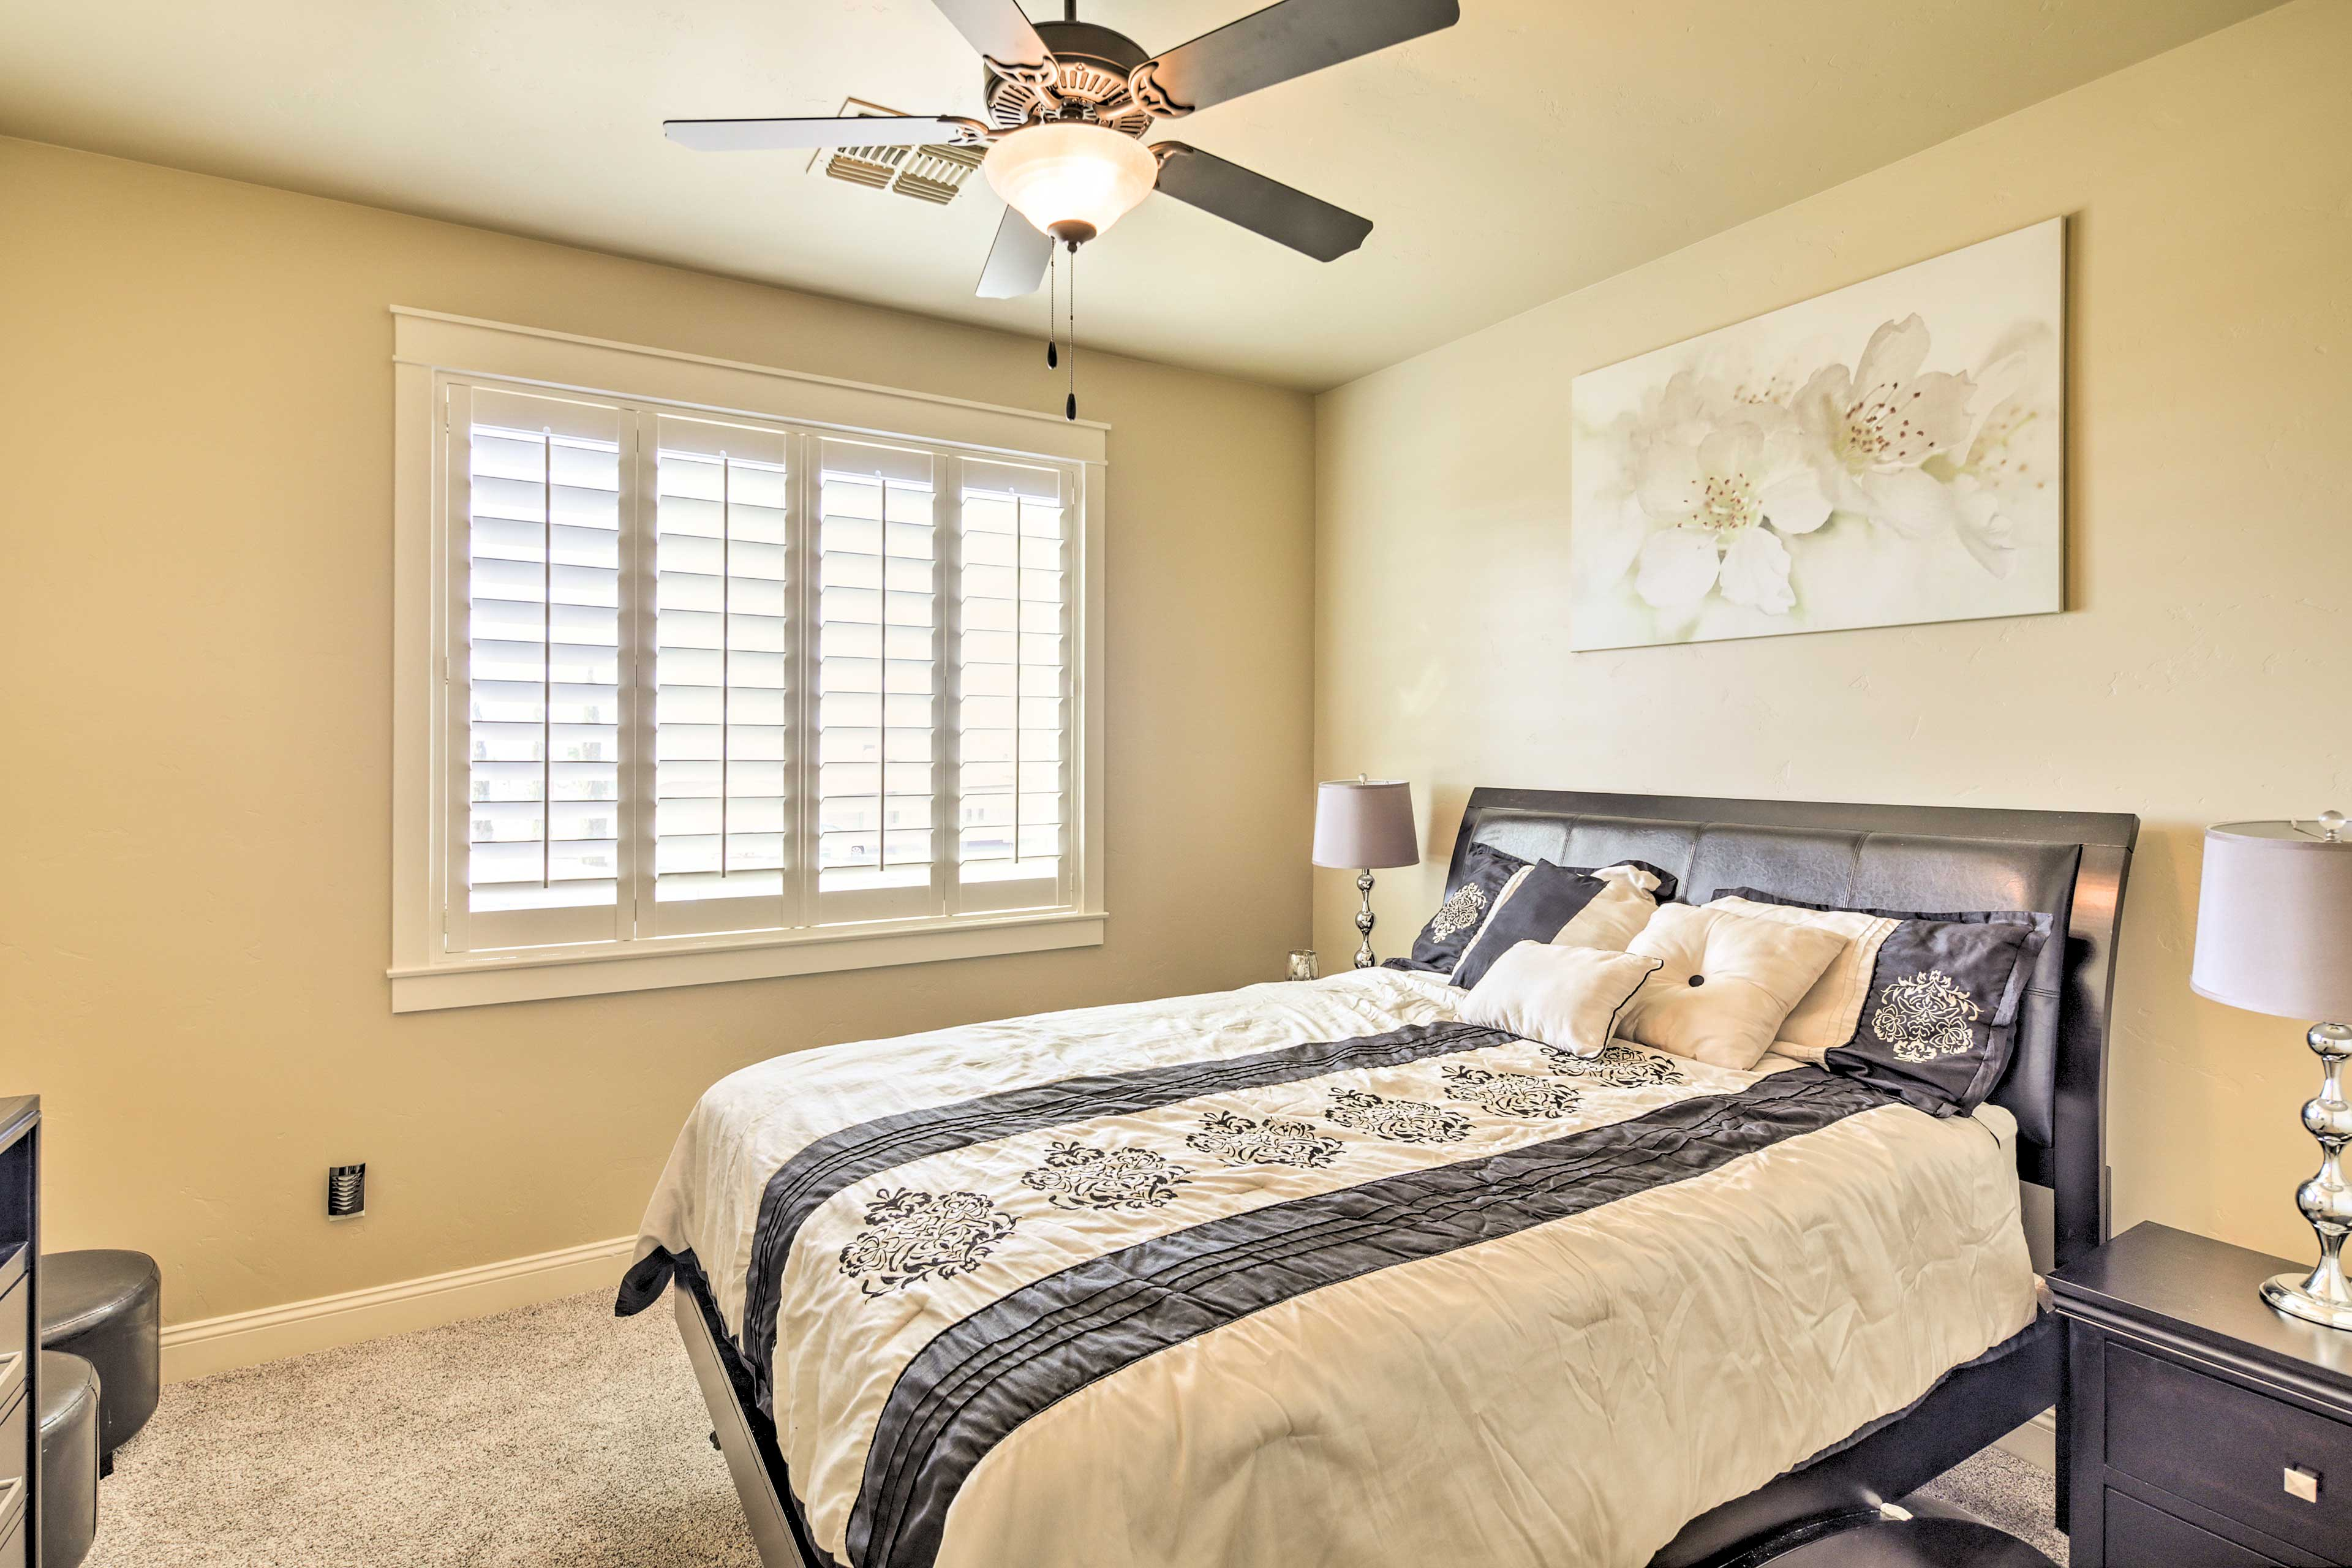 Sleep is sure to come easy on this last bedroom's queen bed.